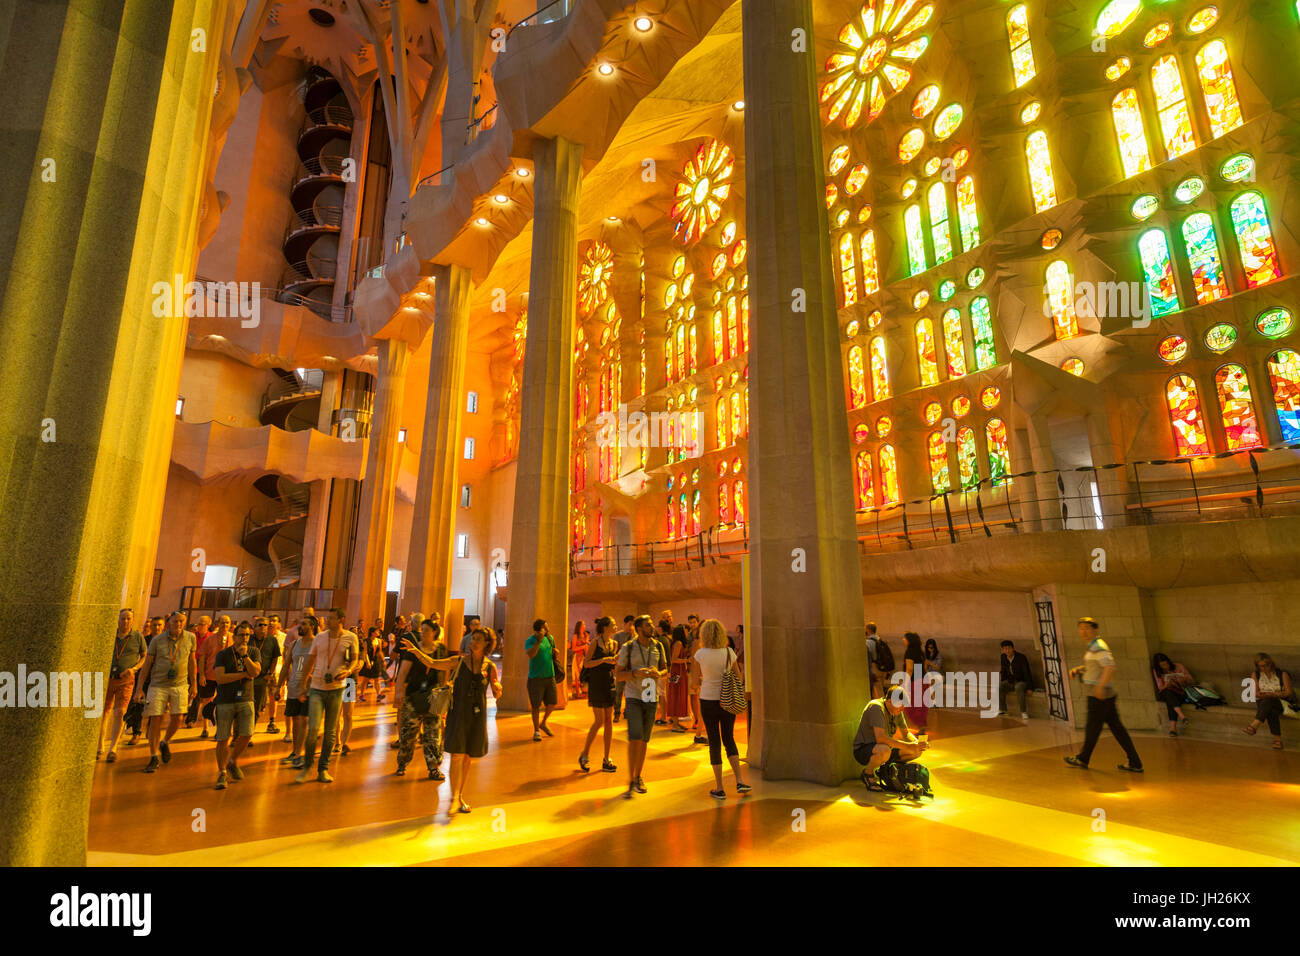 La Sagrada Familia Church Basilica Interior With Stained Glass